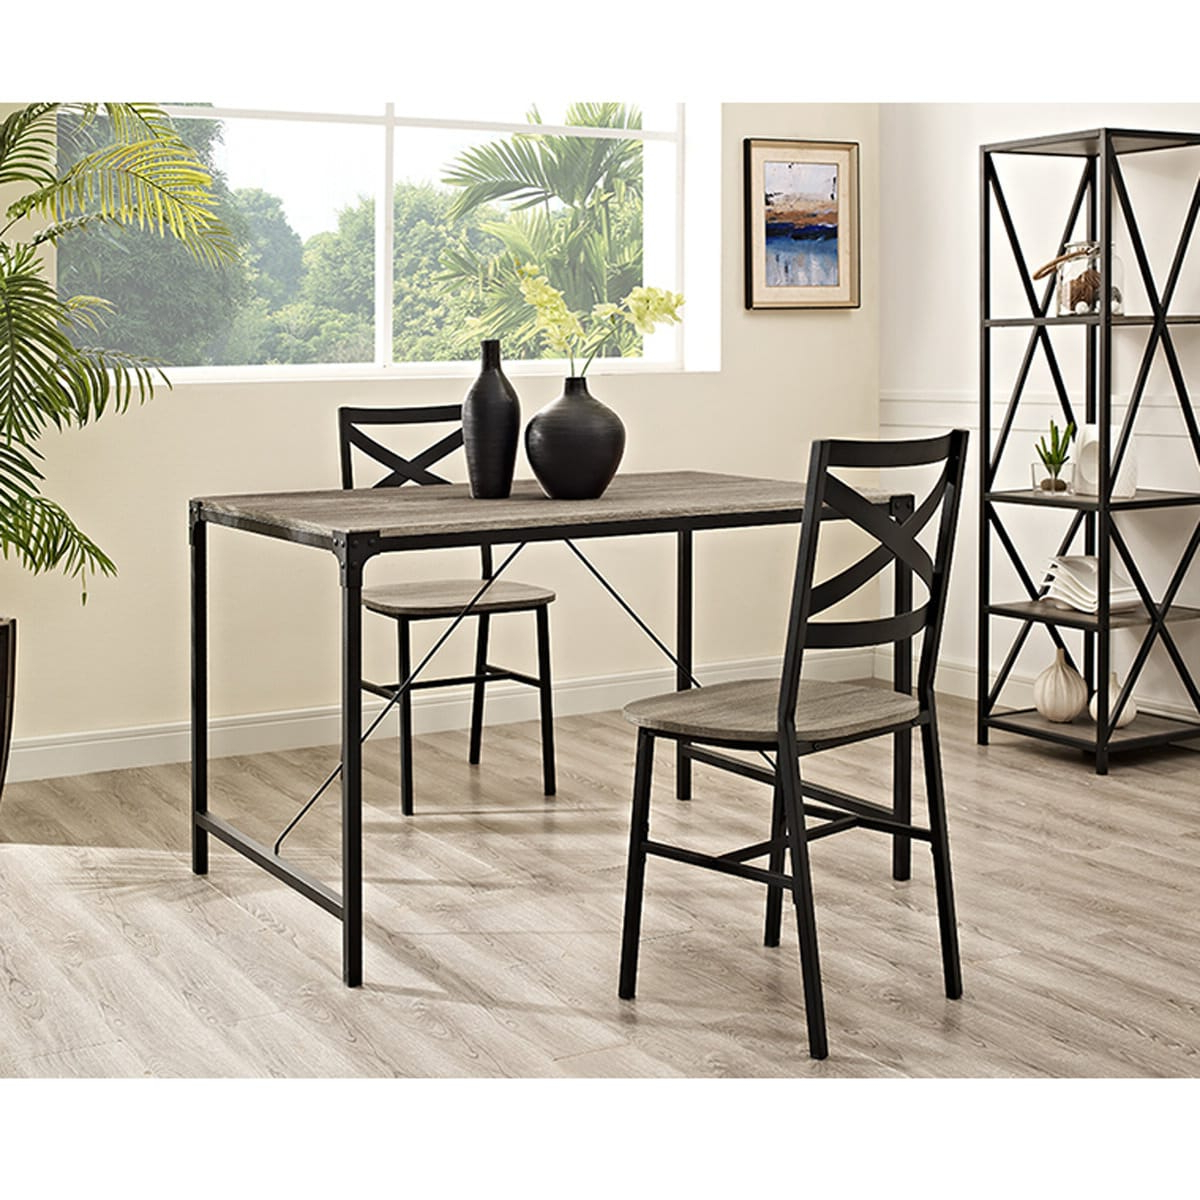 Best And Newest Angle Iron 48 Inch Wood Dining Table – Driftwoodwalker With Transitional Driftwood Casual Dining Tables (View 3 of 30)